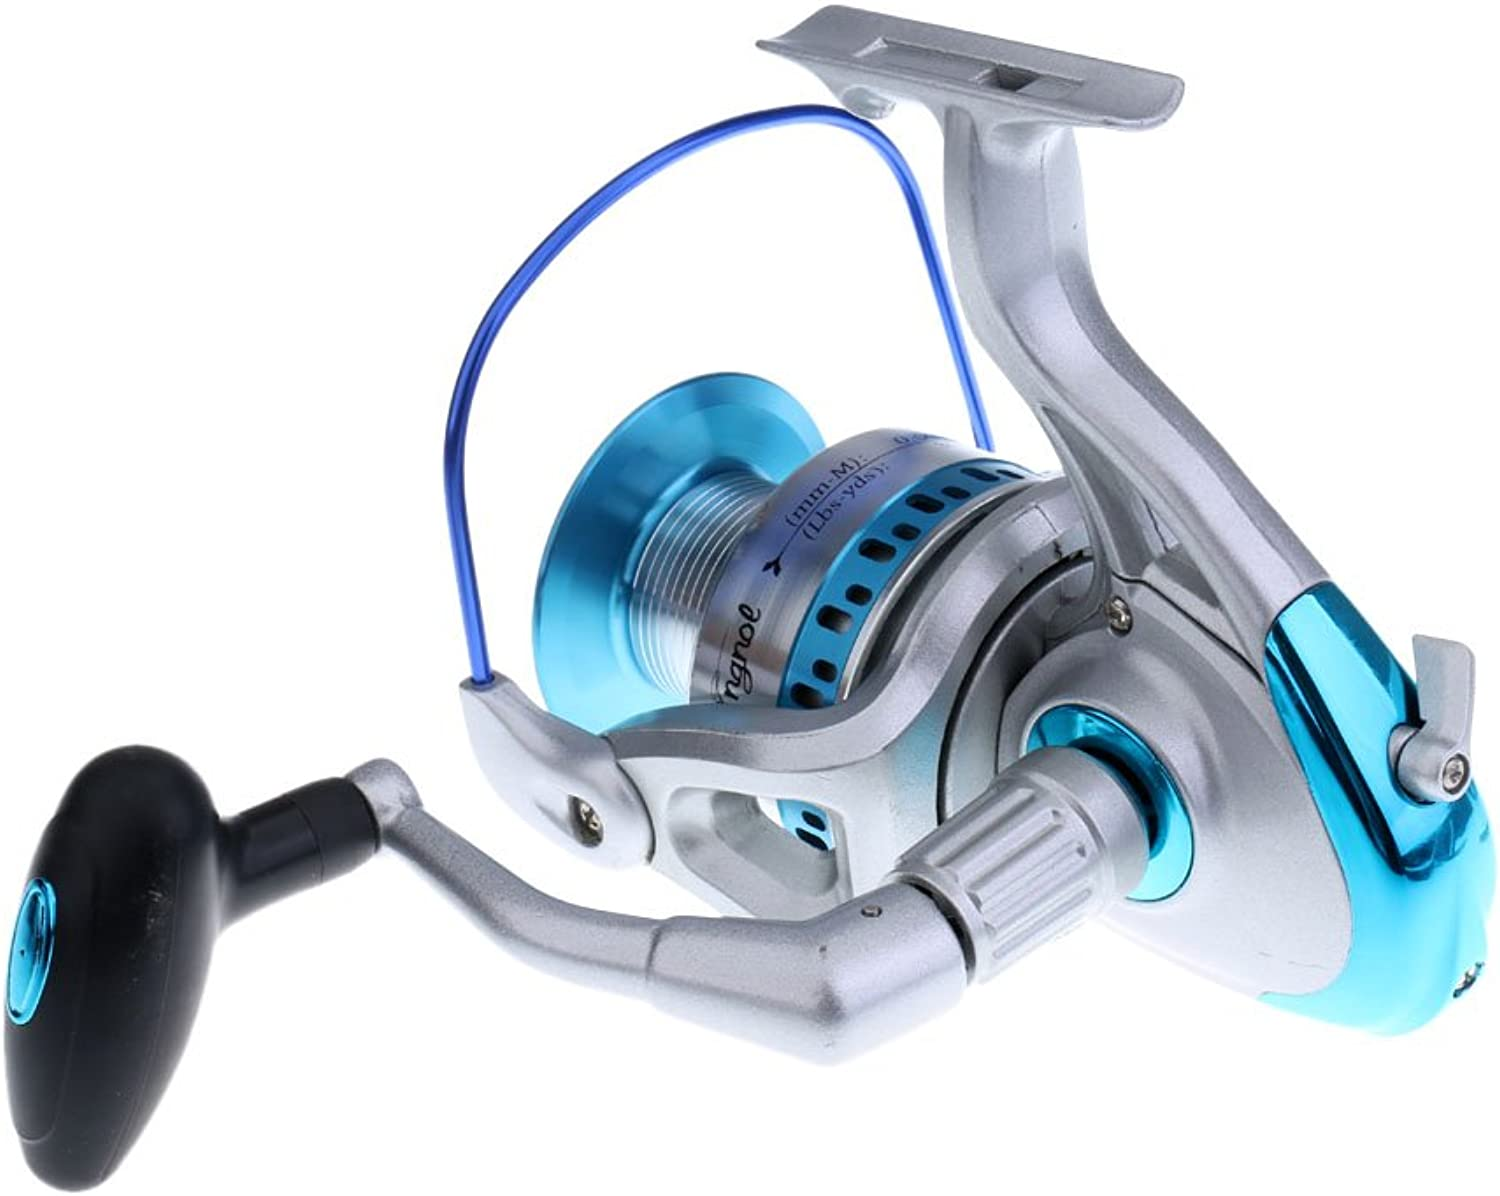 F Fityle Spinning Fishing Reels 7+1BB Super Strong Fishing Wheel Boat Rock Sea Reels